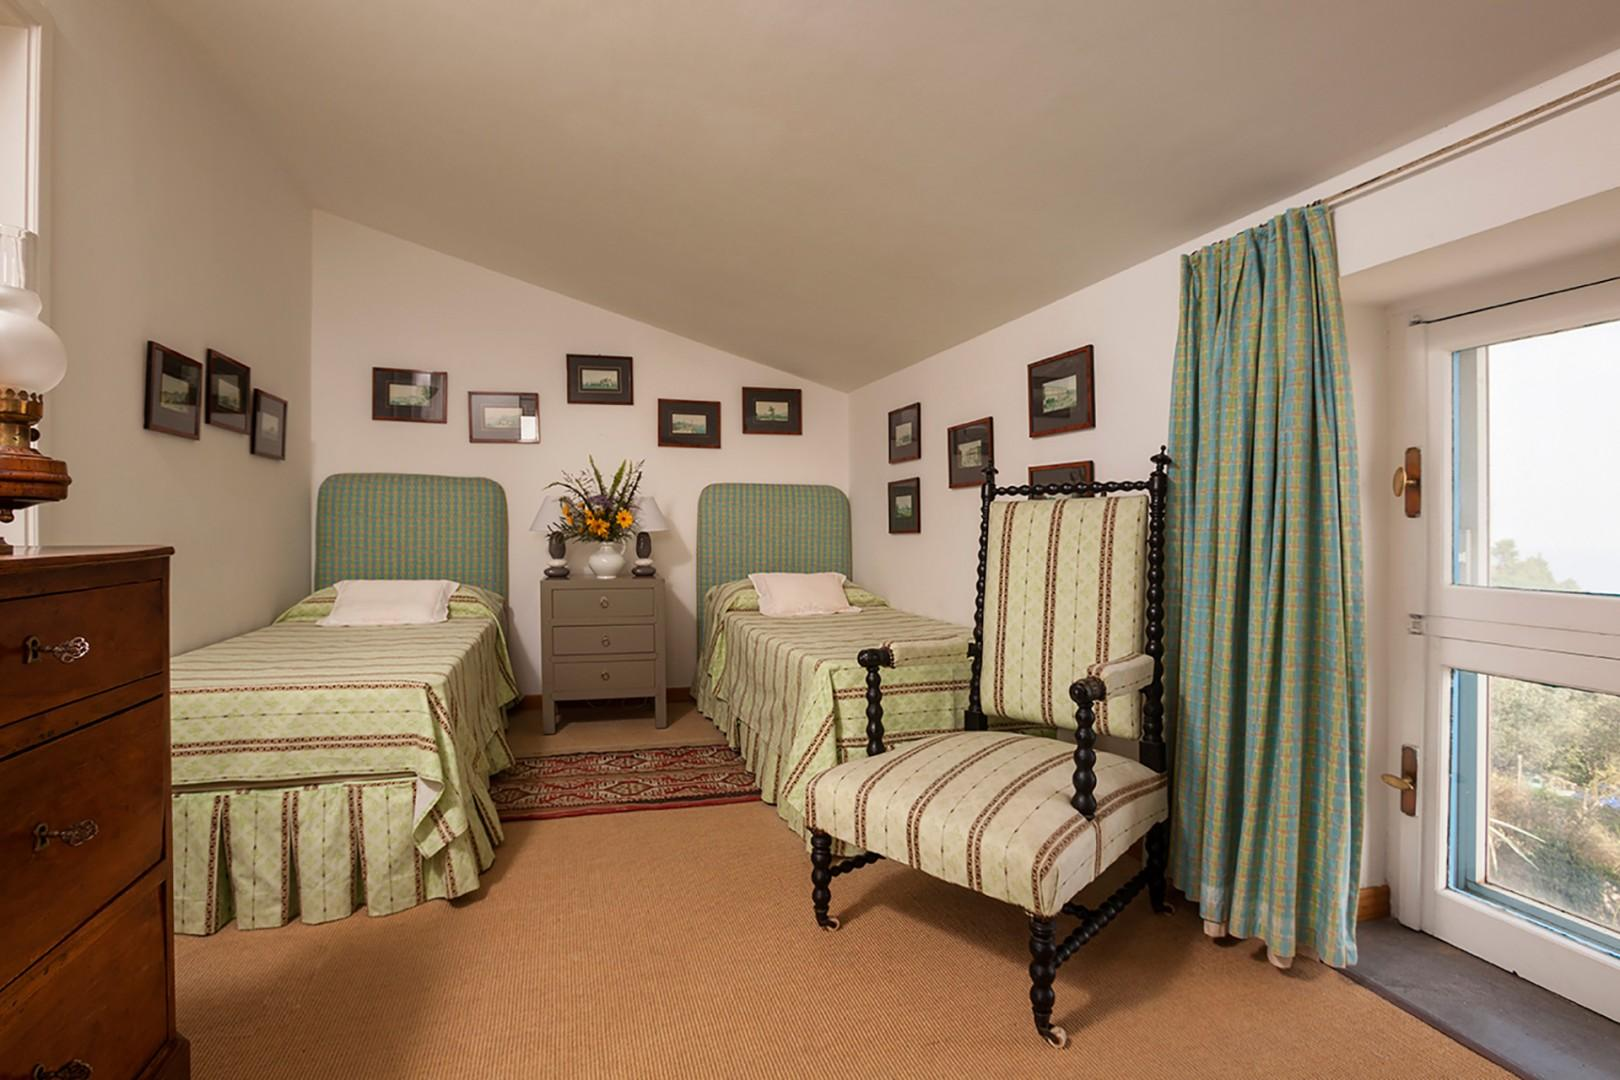 On the top floor, bedroom 4 can also be made up as one large bed or two beds.